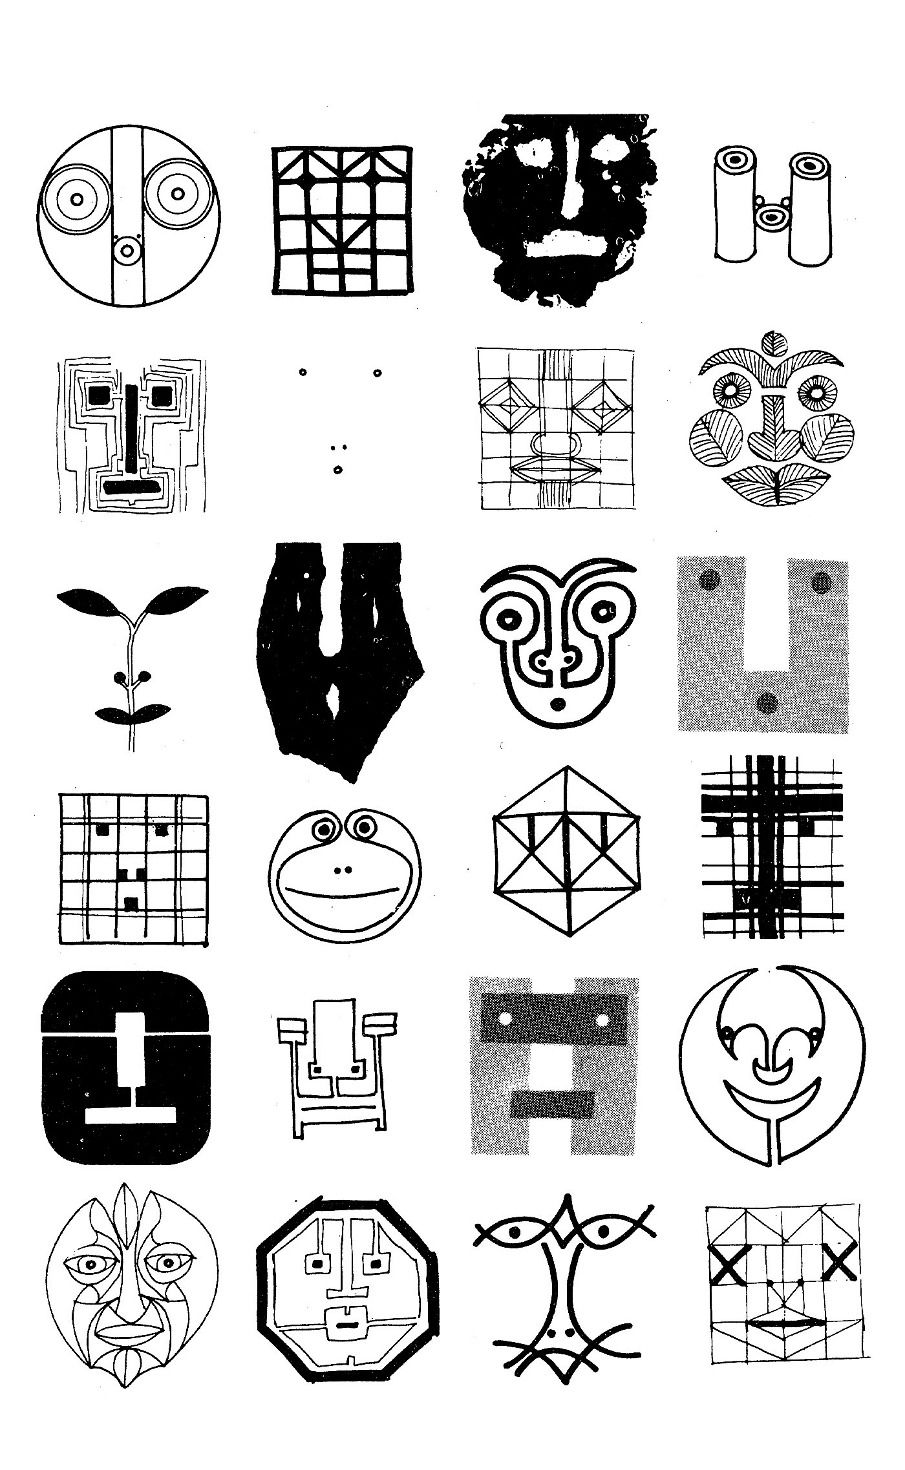 Pin by Katalin Boromissza on History of graphic design